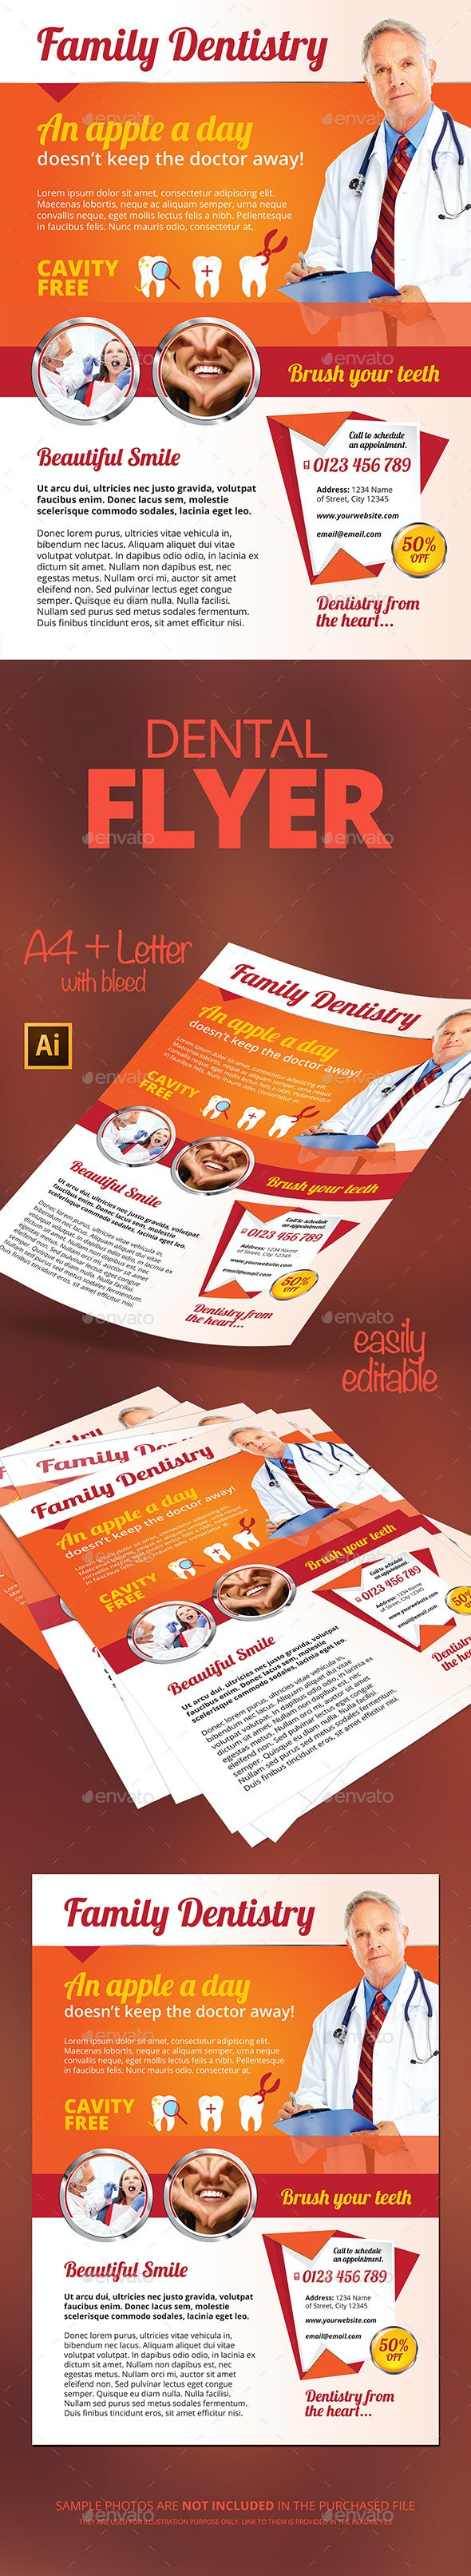 Dental Flyer - Flyers Print Templates